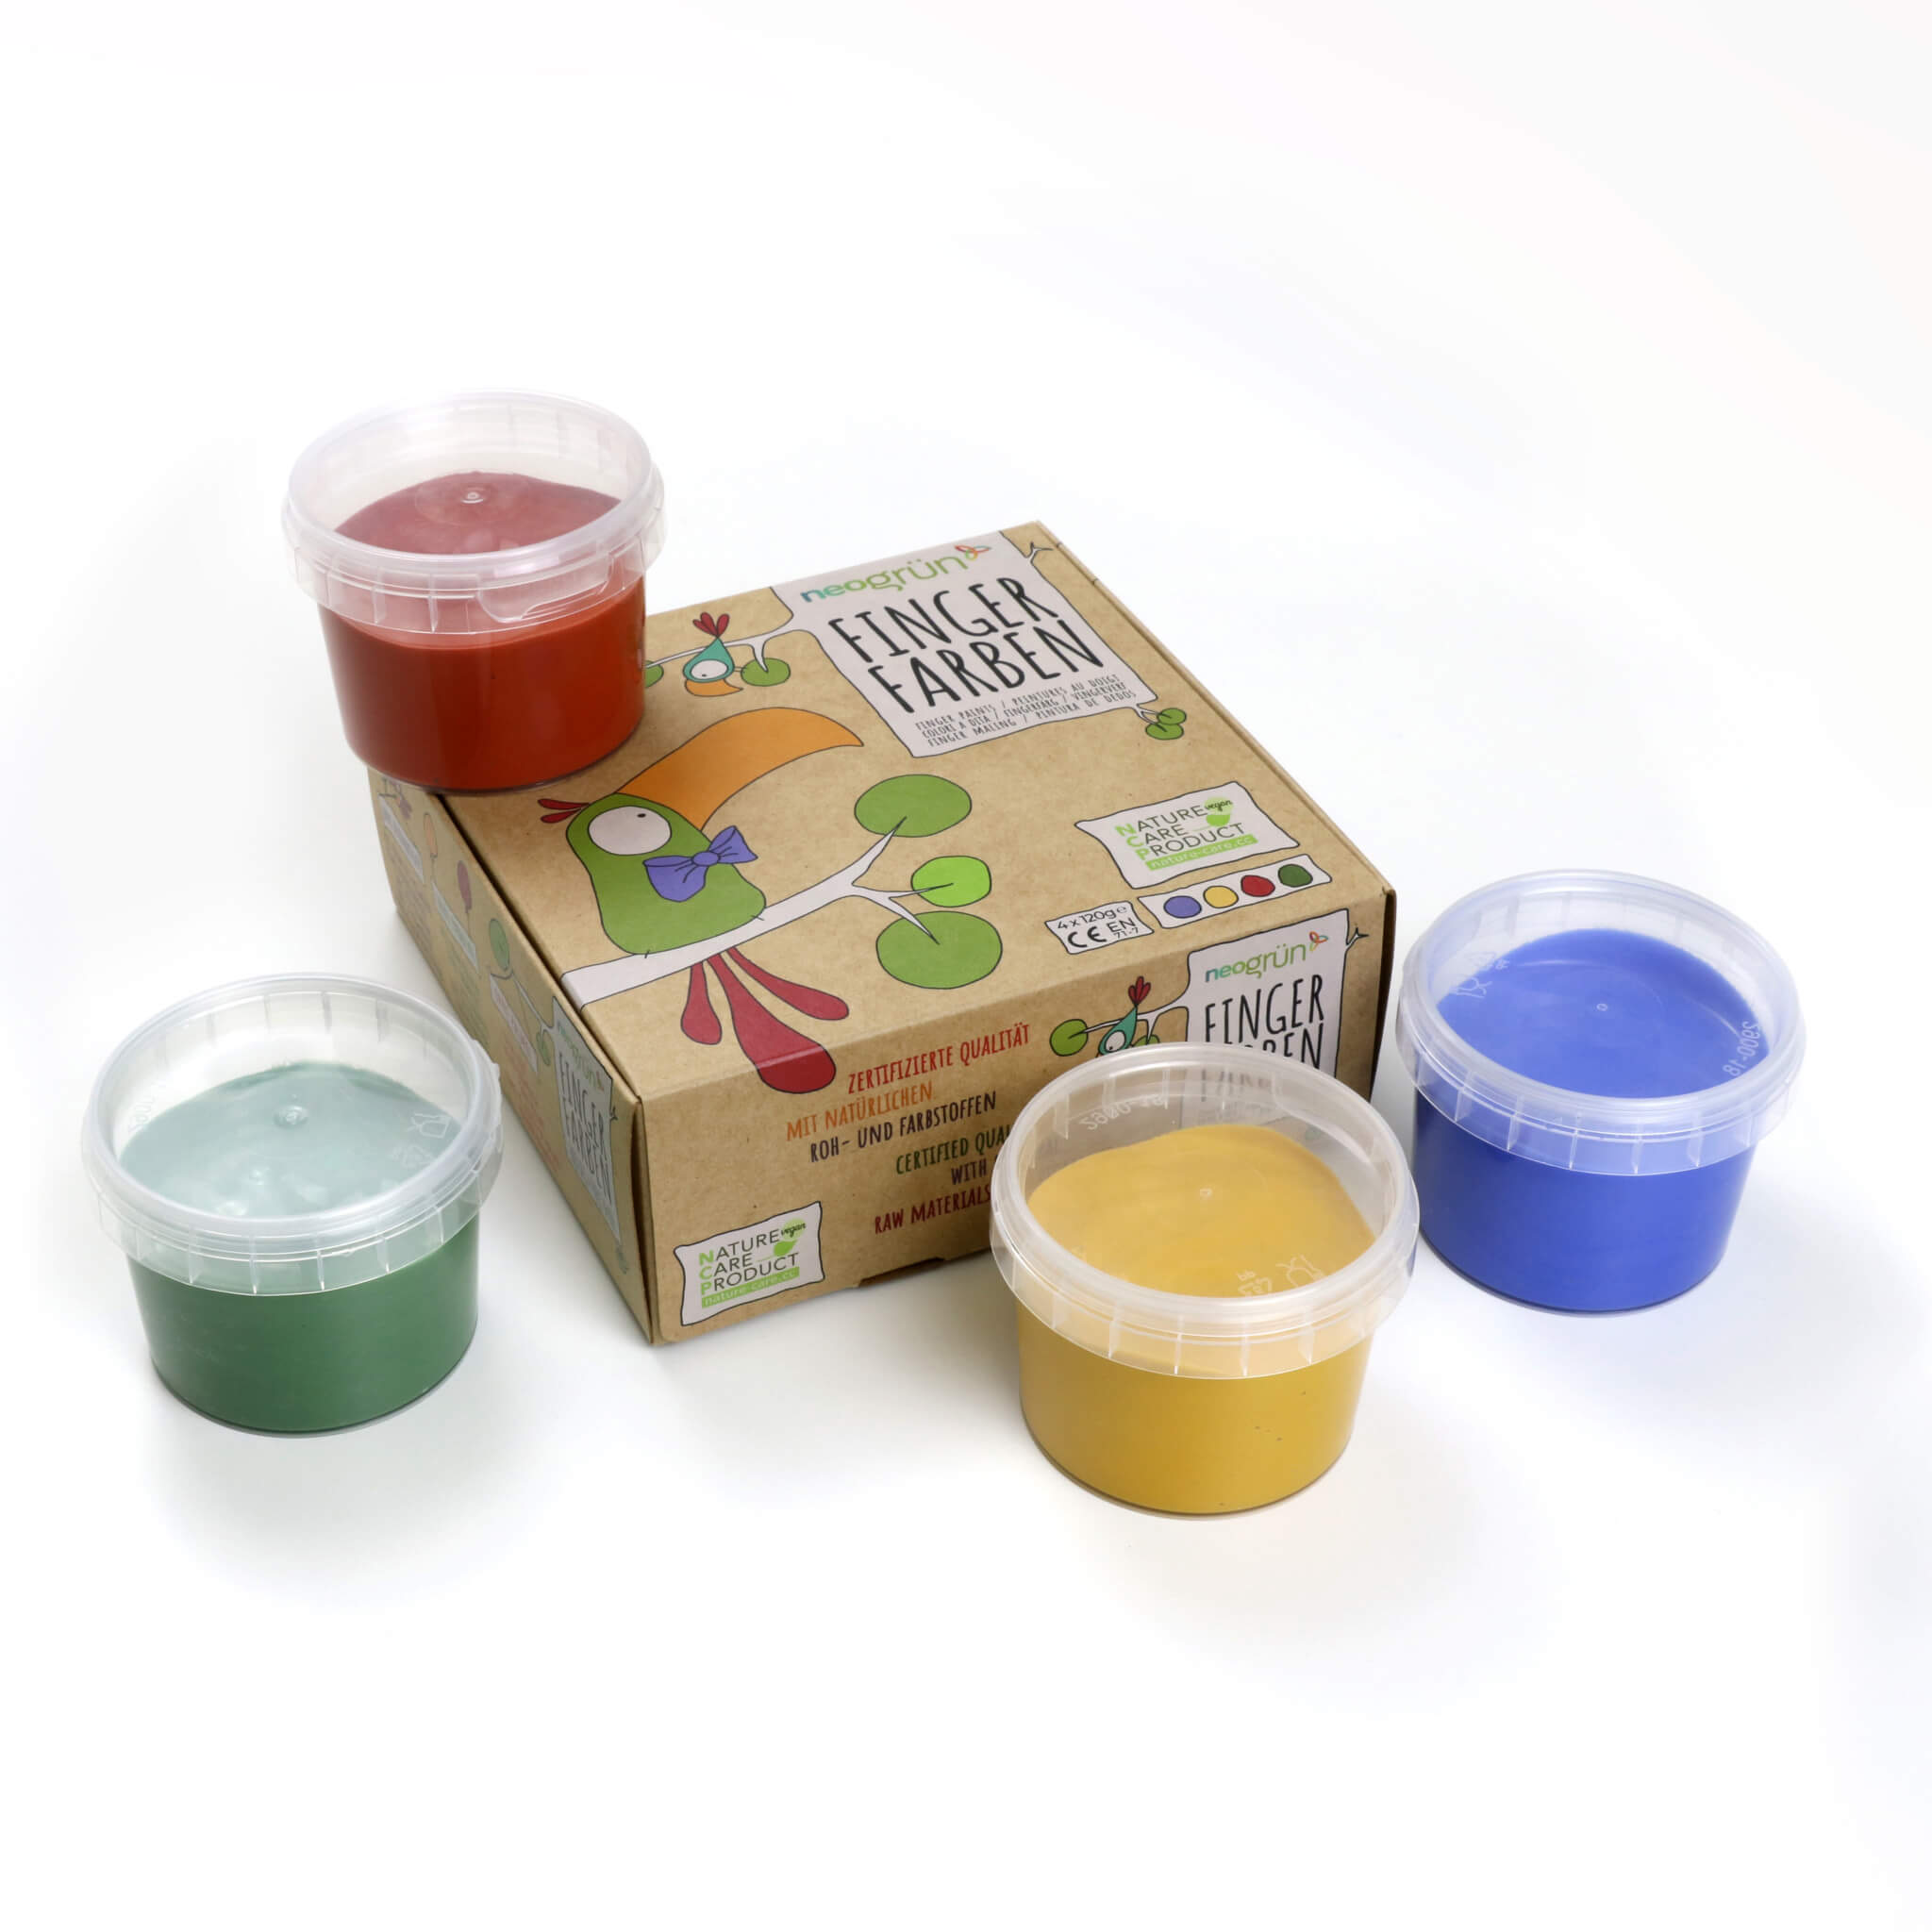 The first eco-certified finger paints and modeling clay from neogrün